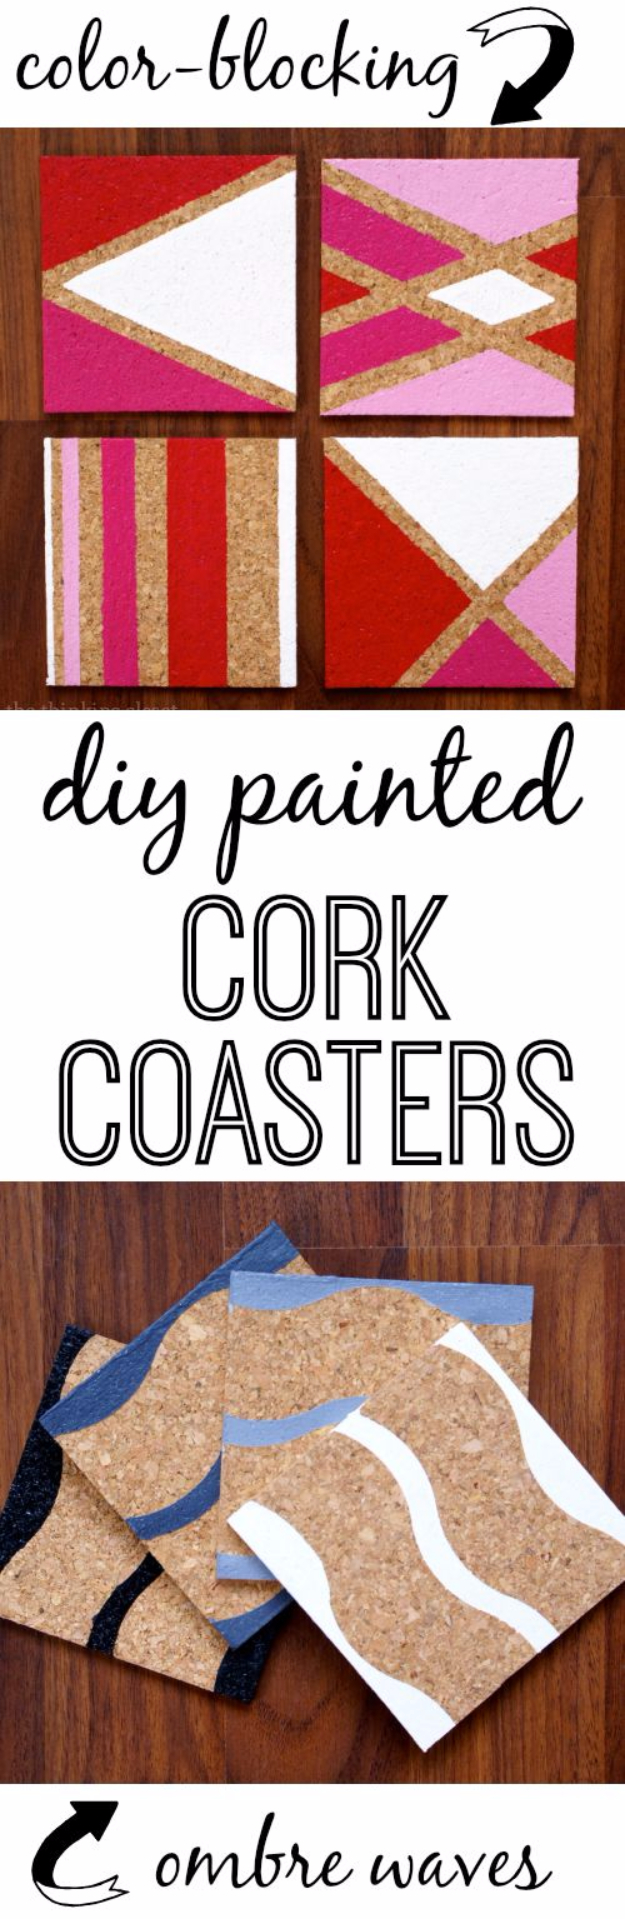 DIY Coasters - DIY Painted Cork Coasters - Best Quick DIY Gifts and Home Decor - Easy Step by Step Tutorials for DIY Coaster Projects - Mod Podge, Tile, Painted, Photo and Sewing Projects - Cool Christmas Presents for Him and Her - DIY Projects and Crafts by DIY Joy